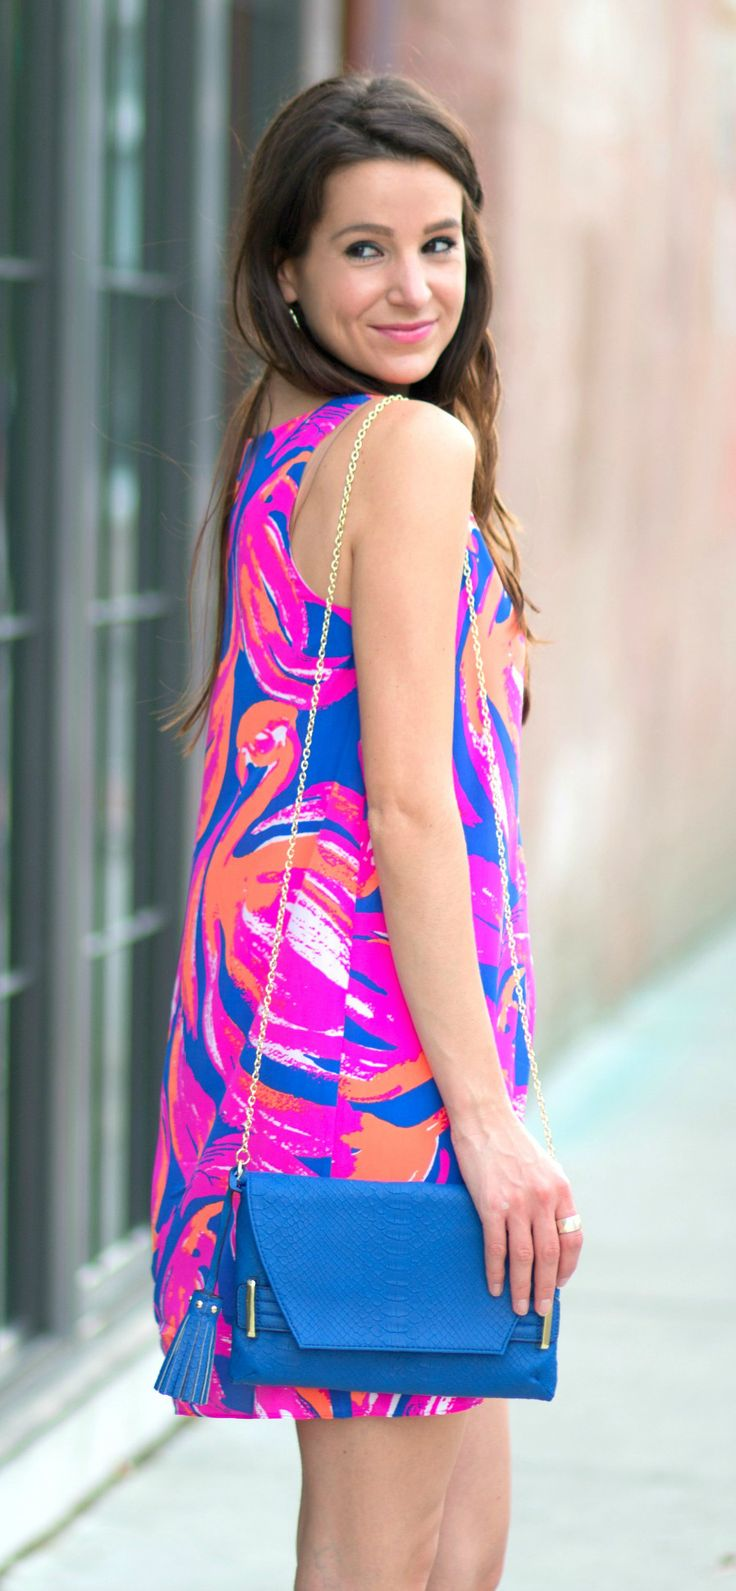 Lilly Pulitzer Jackie Shift Dress with a cobalt crossbody bag, white perforated pumps, and white, blue, and pink Kendra Scott Brynn bracelets |  Cocktails in Charleston: Lilly Pulitzer Summer Shift Dress by Stephanie Ziajka from Diary of a Debutante